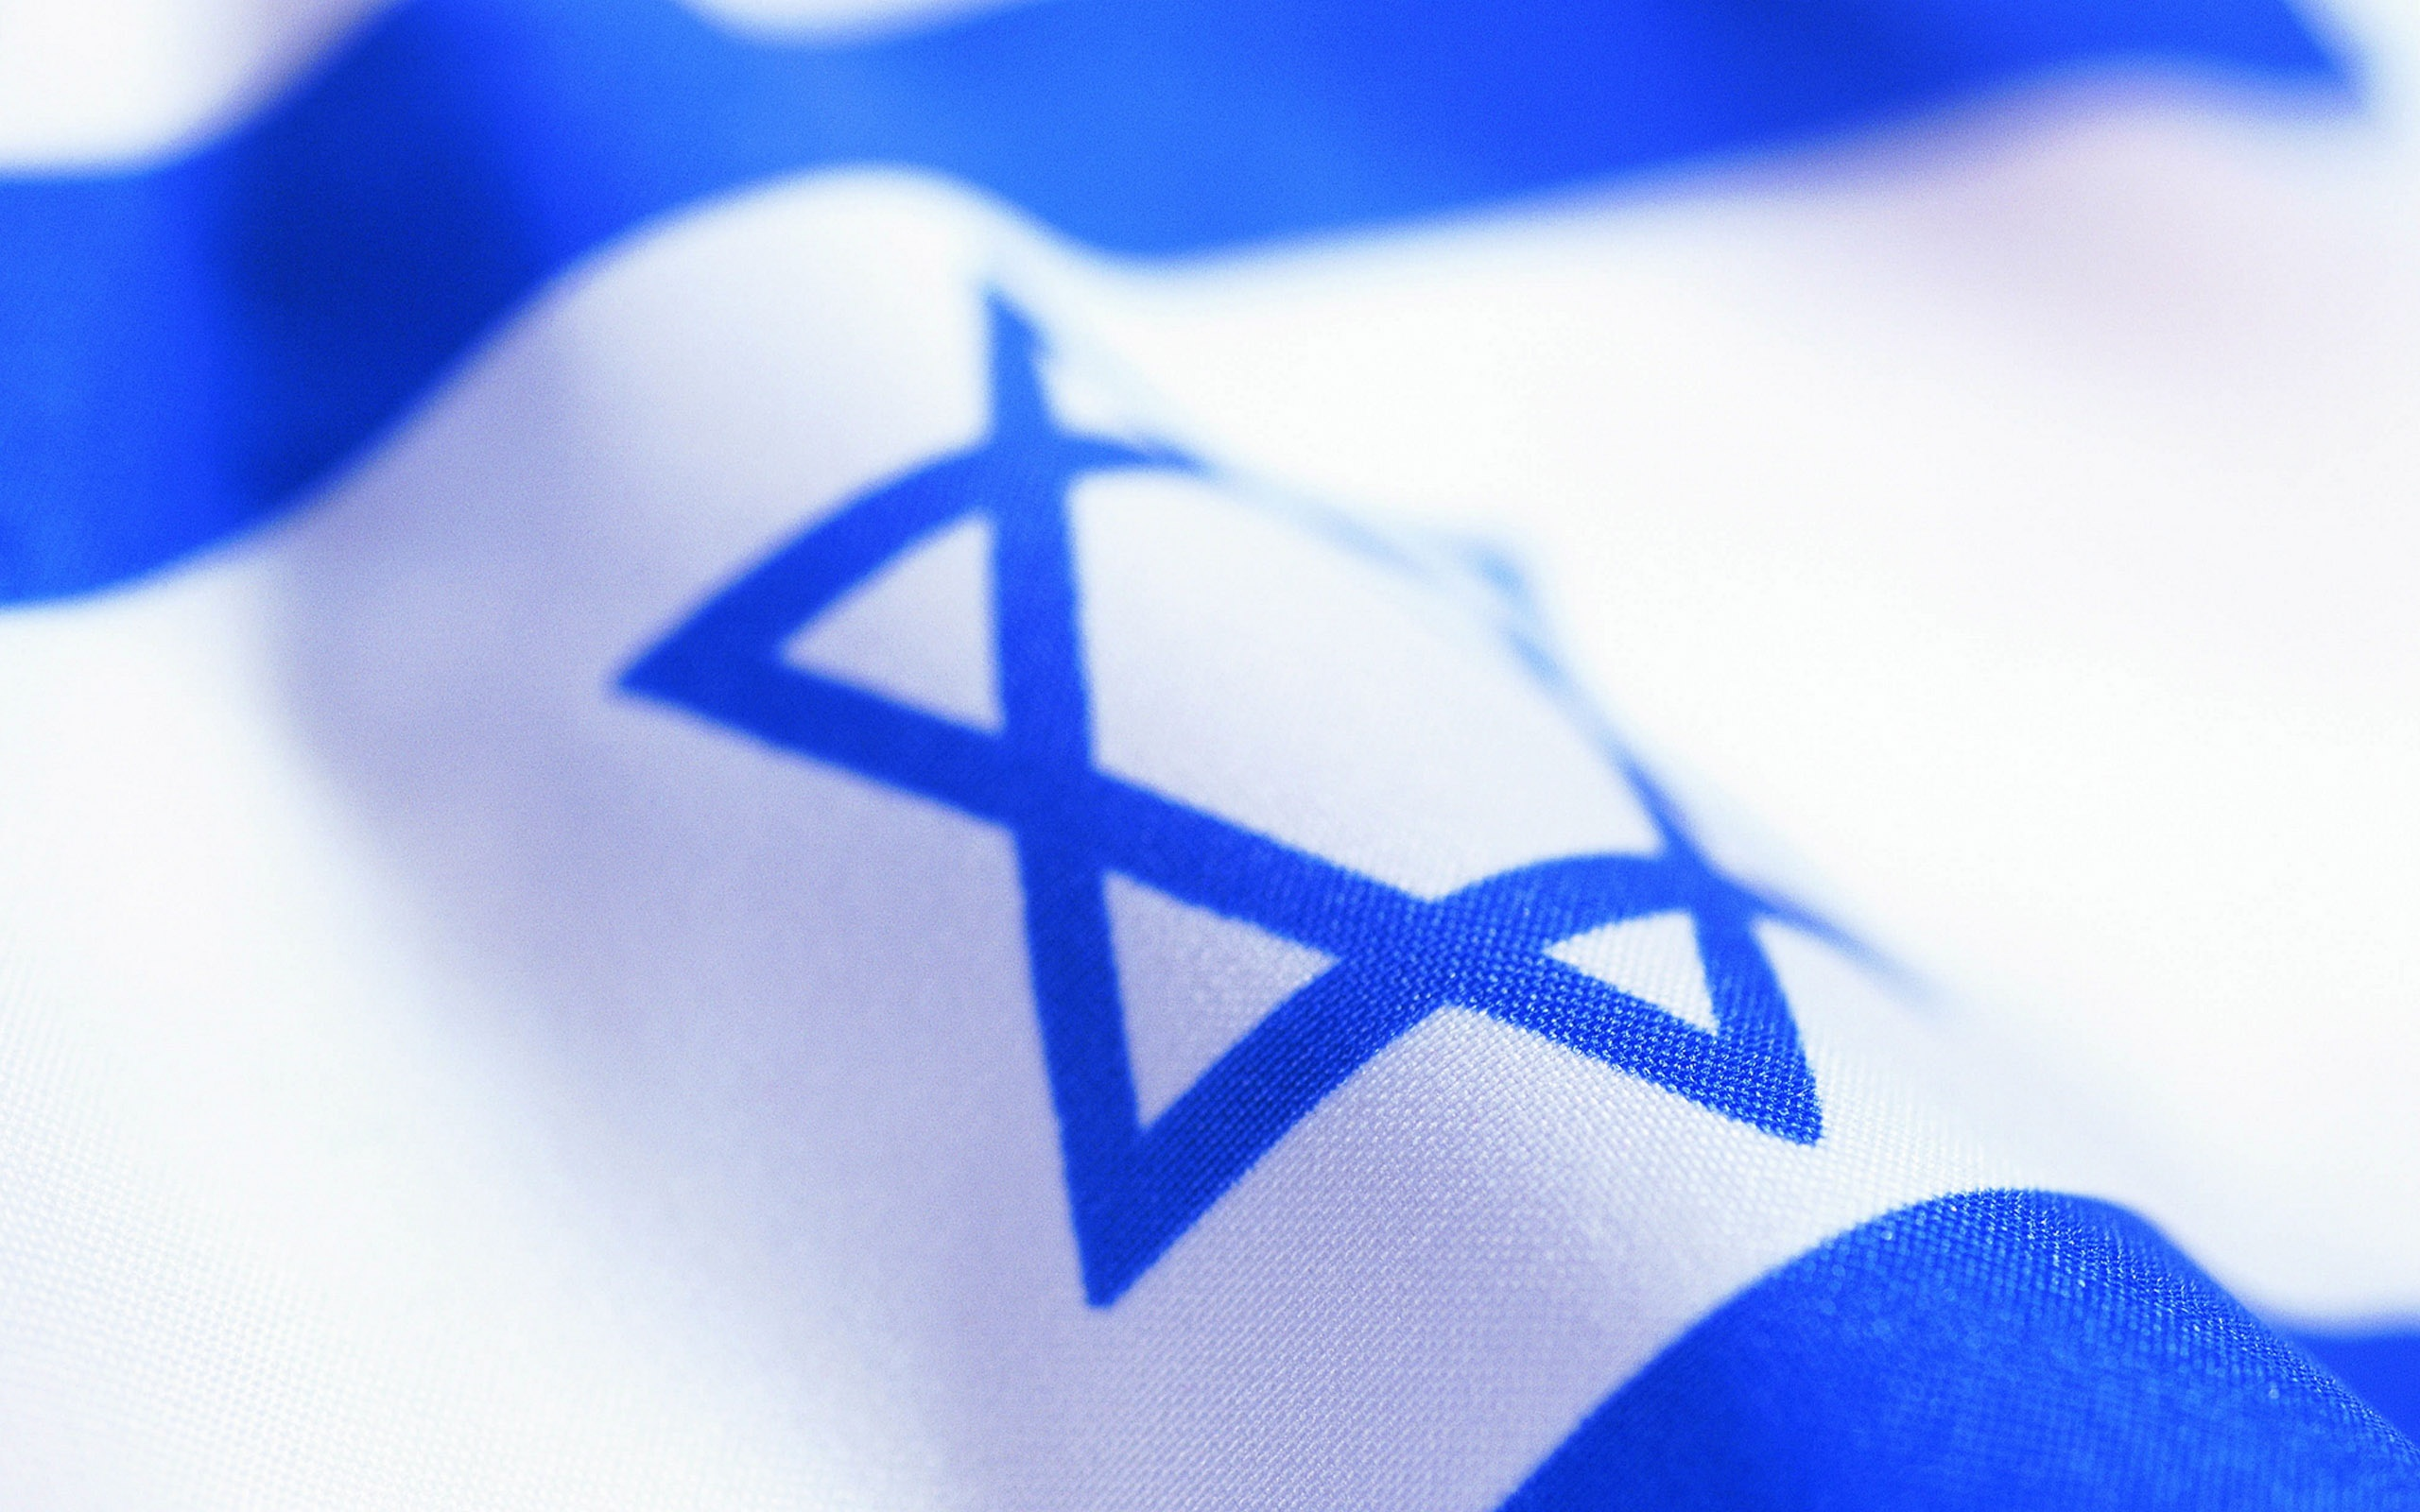 flag of israel wallpaper - photo #4